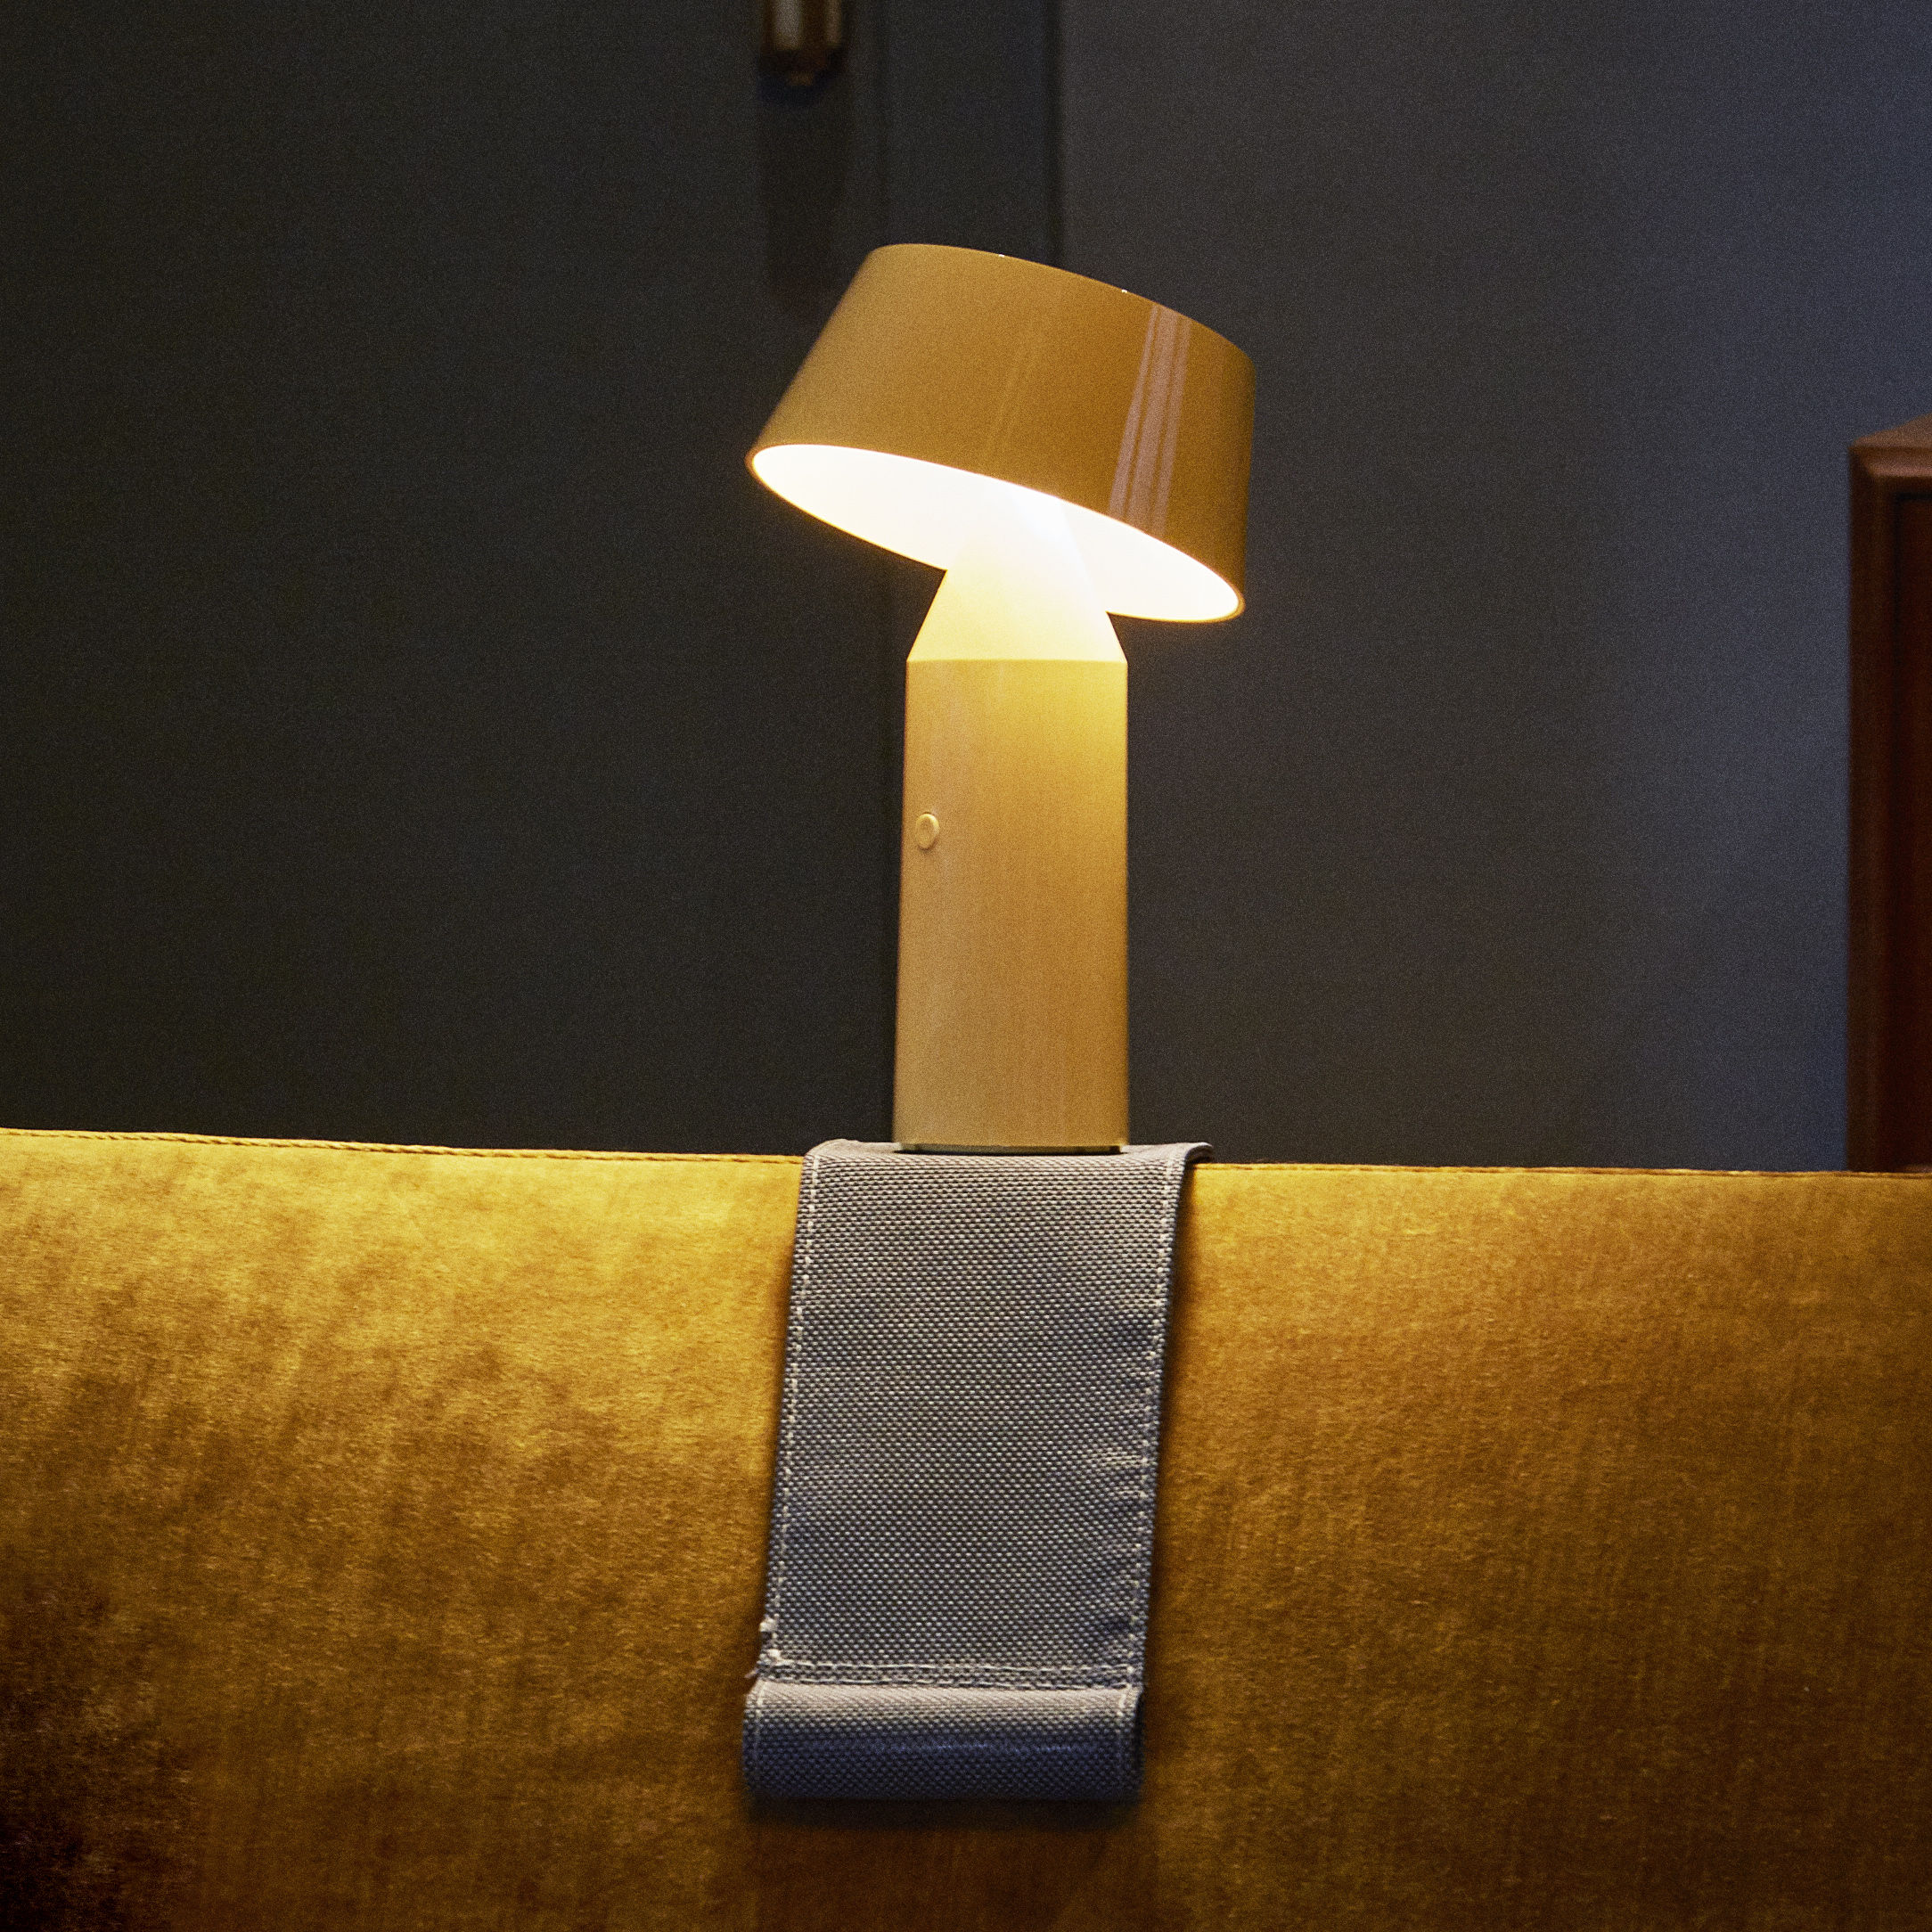 Lighting - Table Lamps - Fixation strap for armrest - / For the Bicoca lamp by Marset - Grey - Fabric, Metal